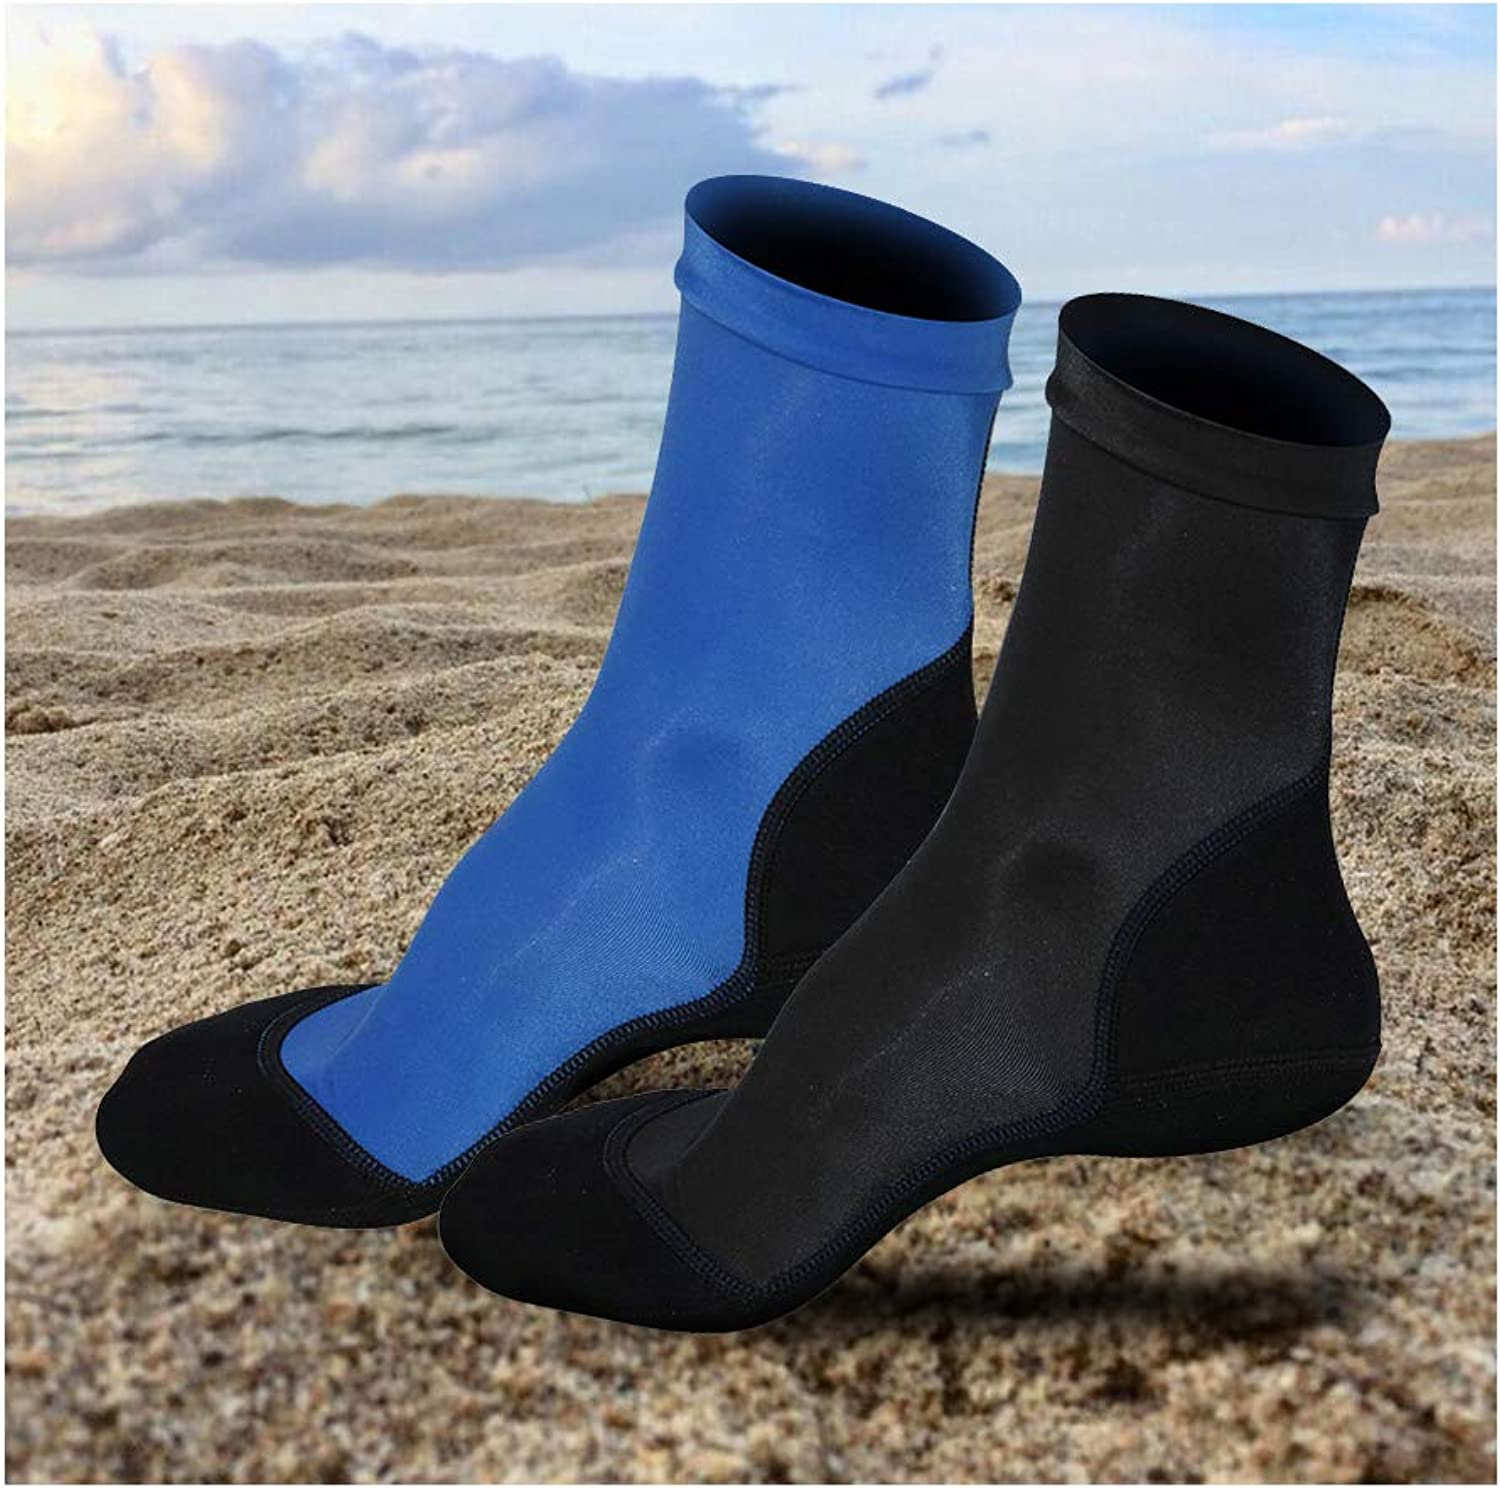 Beach Socks 2 Pairs  Neoprene Fin Socks, Water Sport Socks Lycra for Sand Volleyball Rafting Snorkeling Sand Soccer Lake Swimming Walking Fishing Angling Kayak Diving Beach